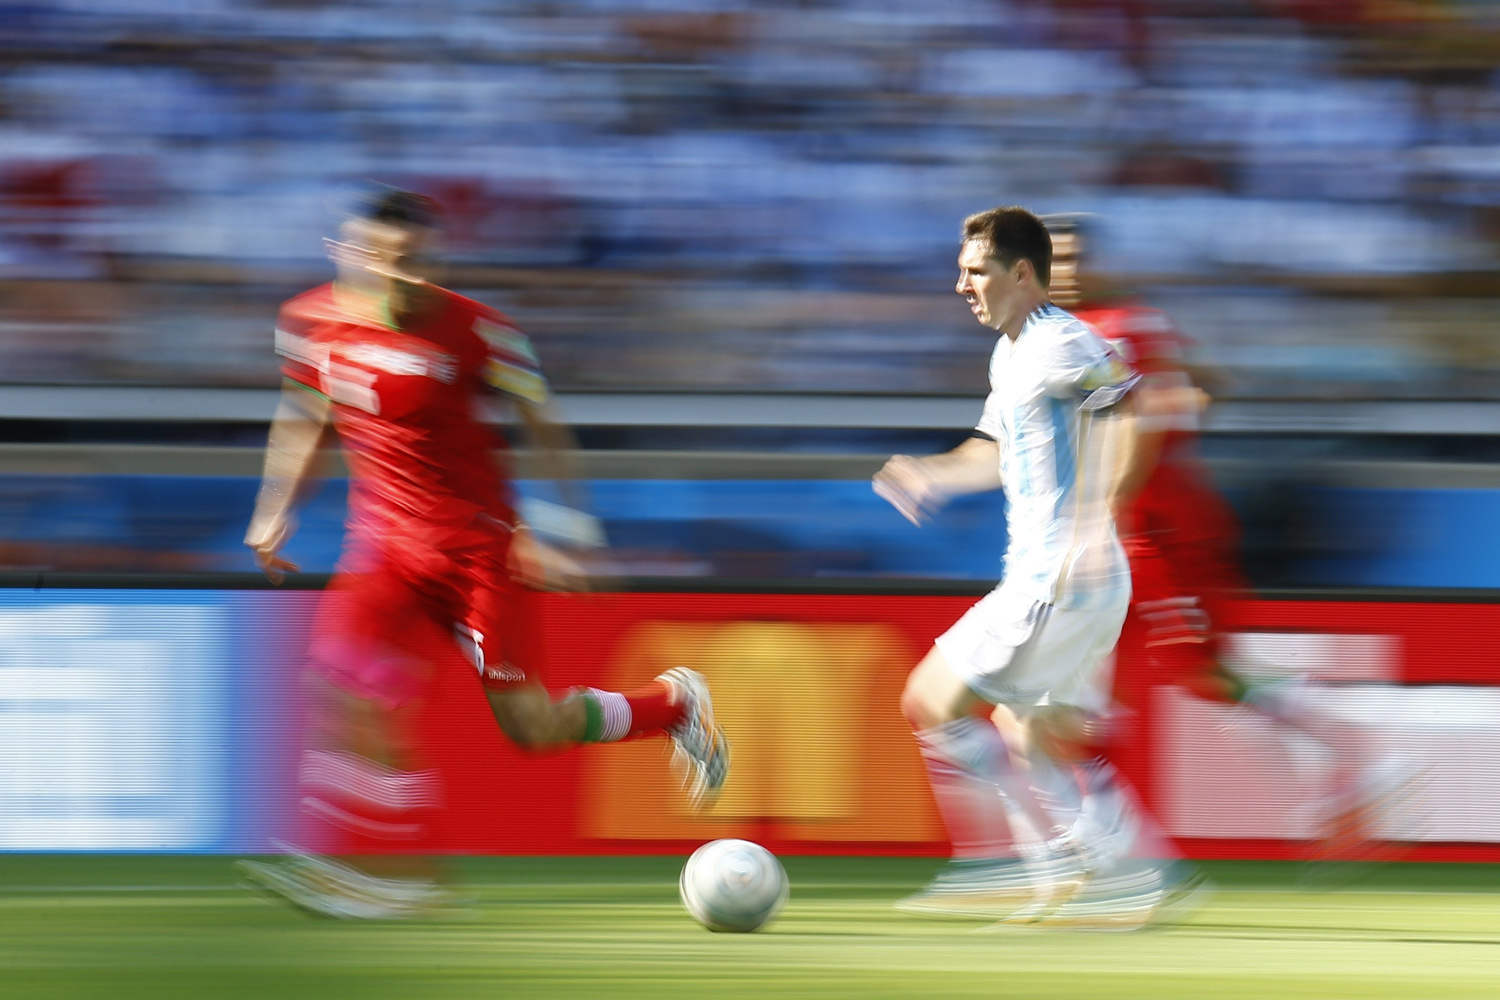 Jun. 21, 2014.  Argentina's Lionel Messi fights for the ball with Iran's Javad Nekounam (L) during their 2014 World Cup Group F soccer match at the Mineirao stadium in Belo Horizonte, Brazil.